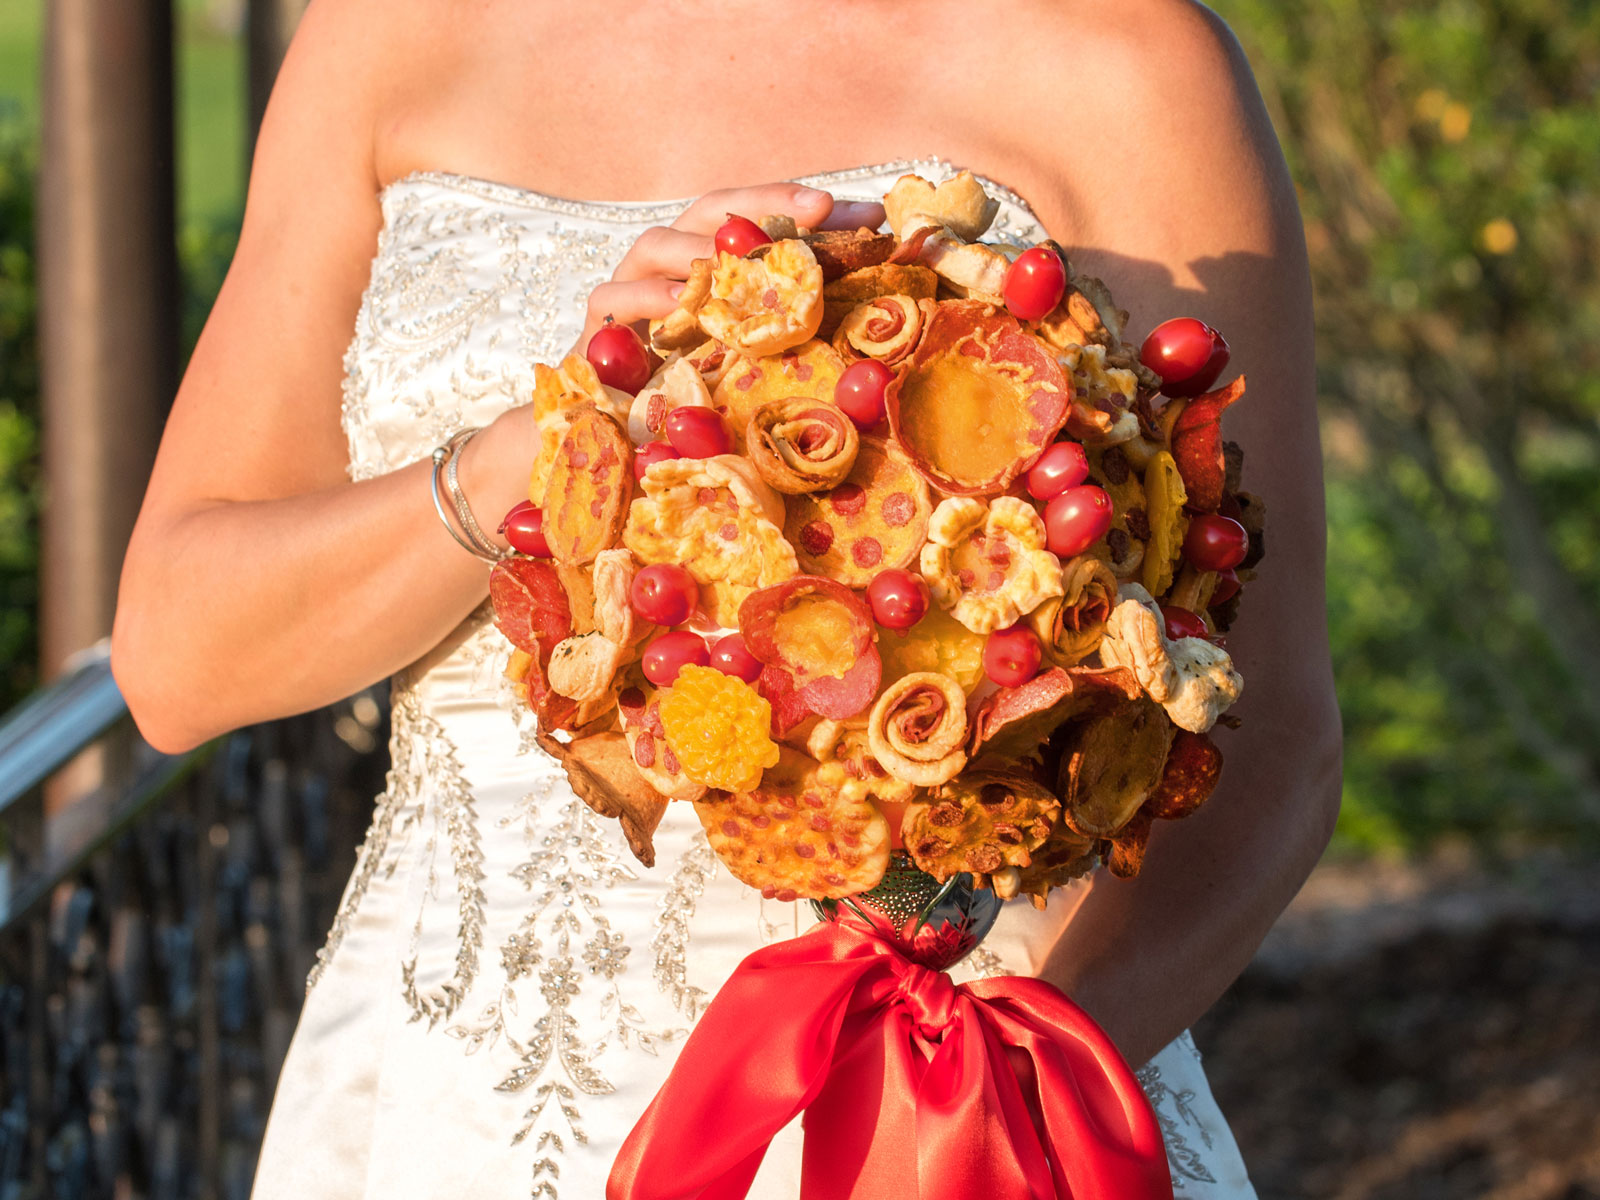 These Pizza Bouquets and Boutonnieres Are a Saucy Addition to Any Wedding